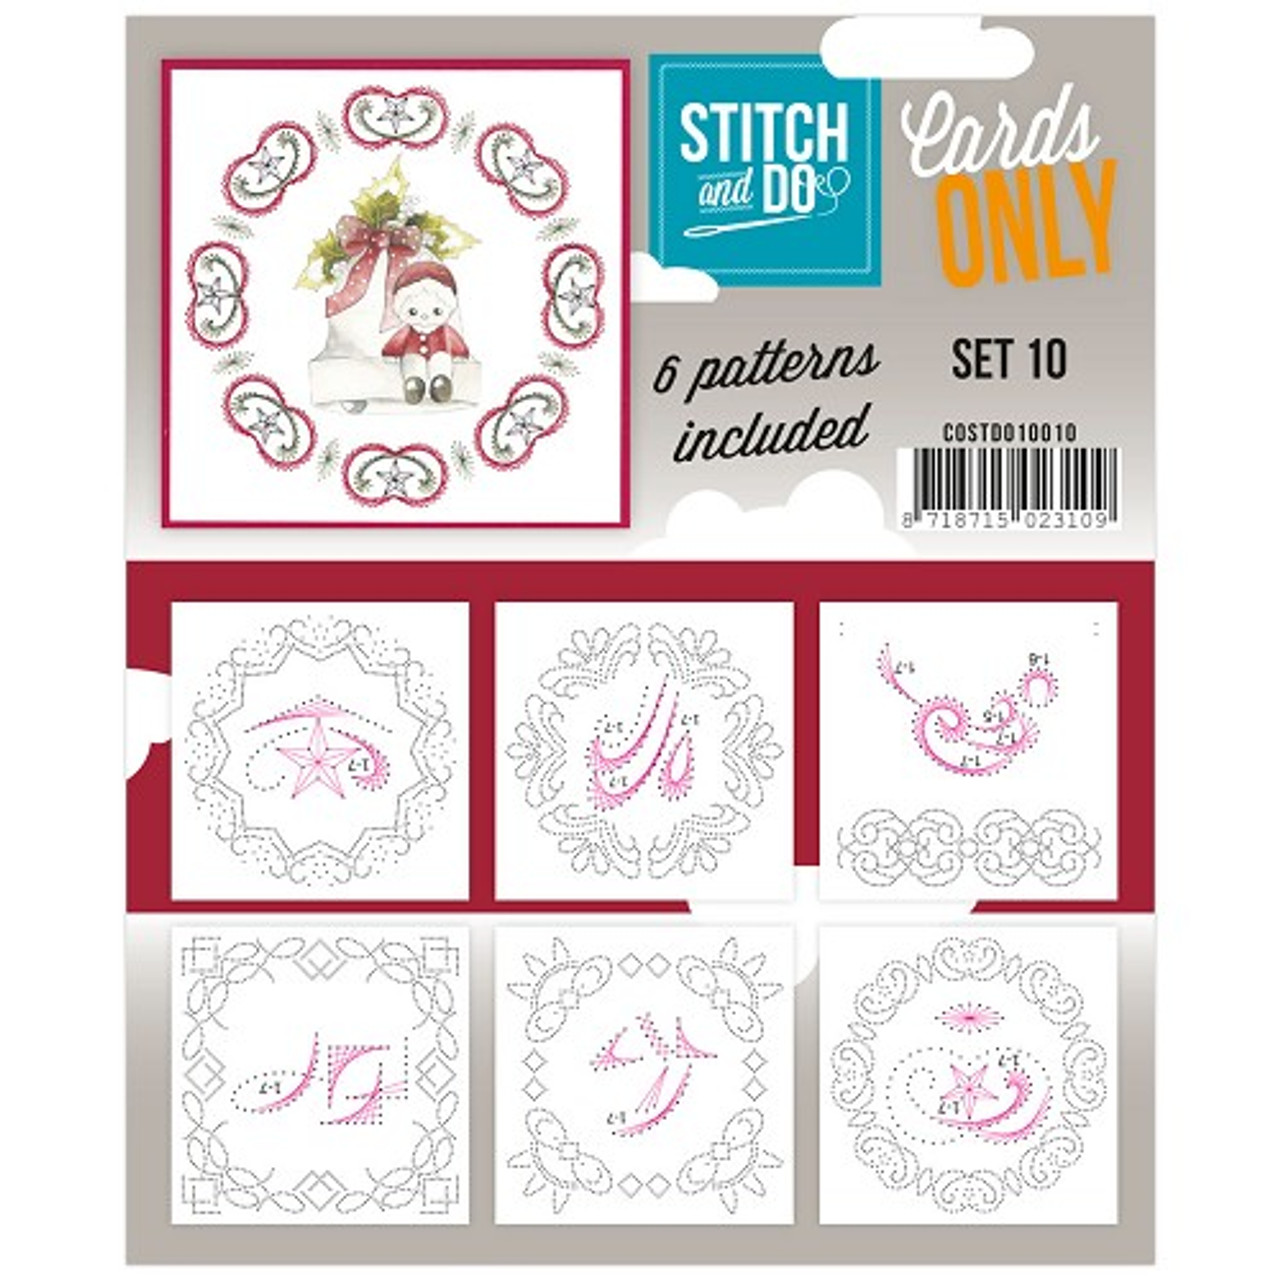 Stitch and Do Card Stitching Cardlayers Only - Set 10